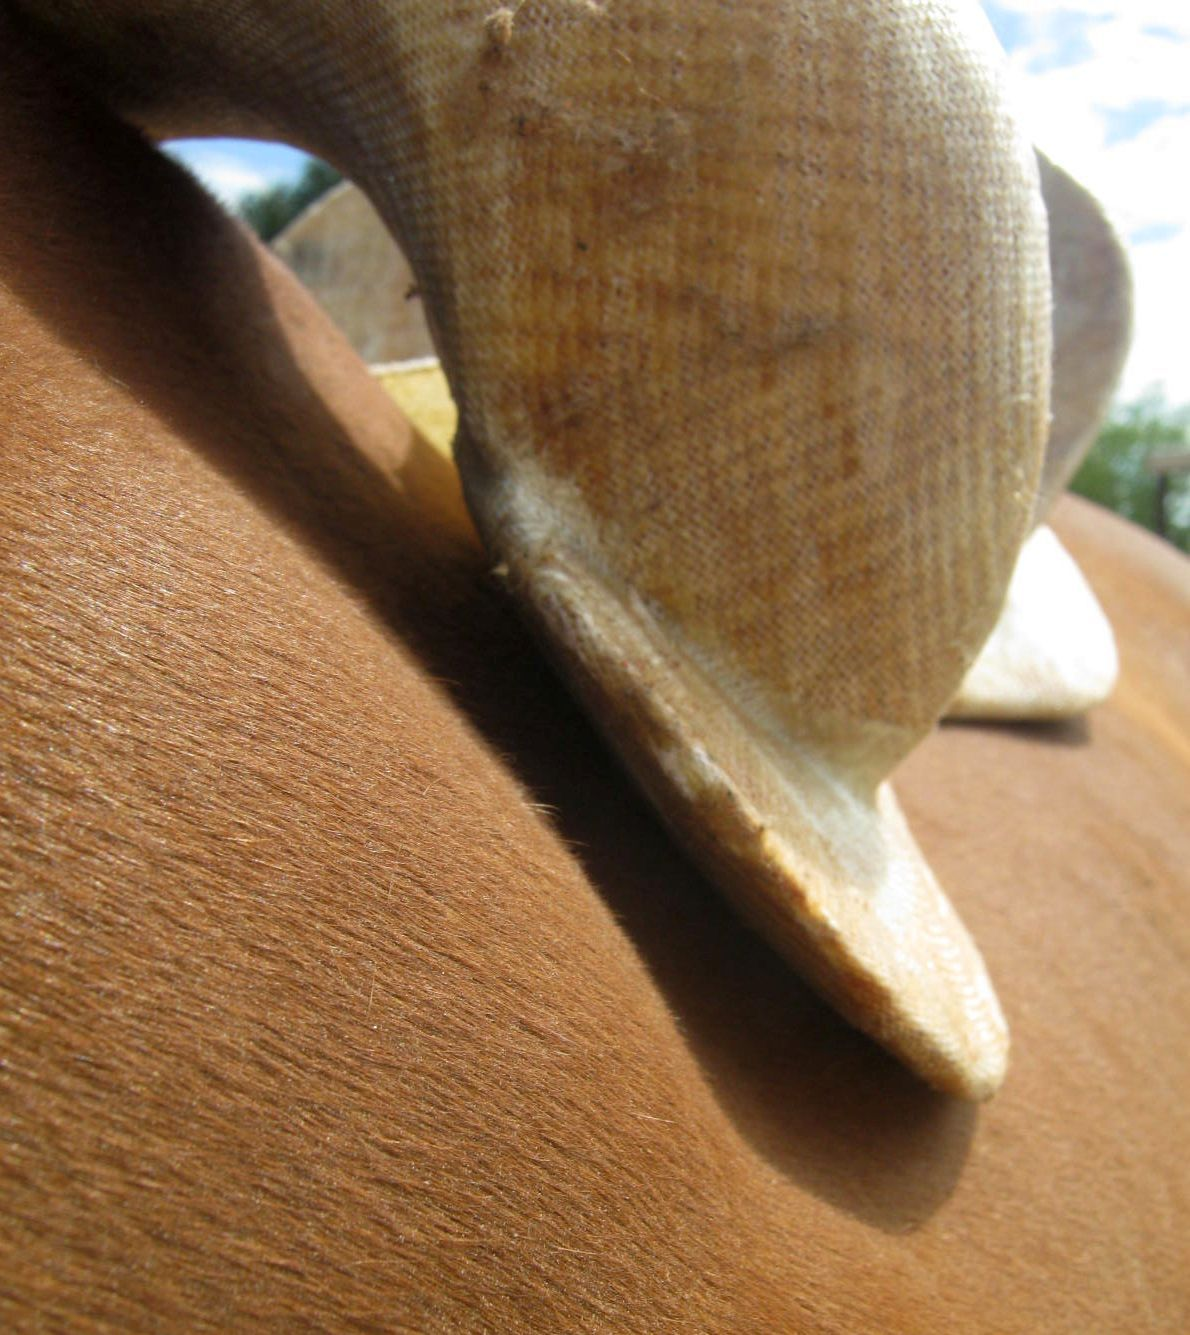 I have fallen hopelessly in love with a saddle    - Page 2 - The